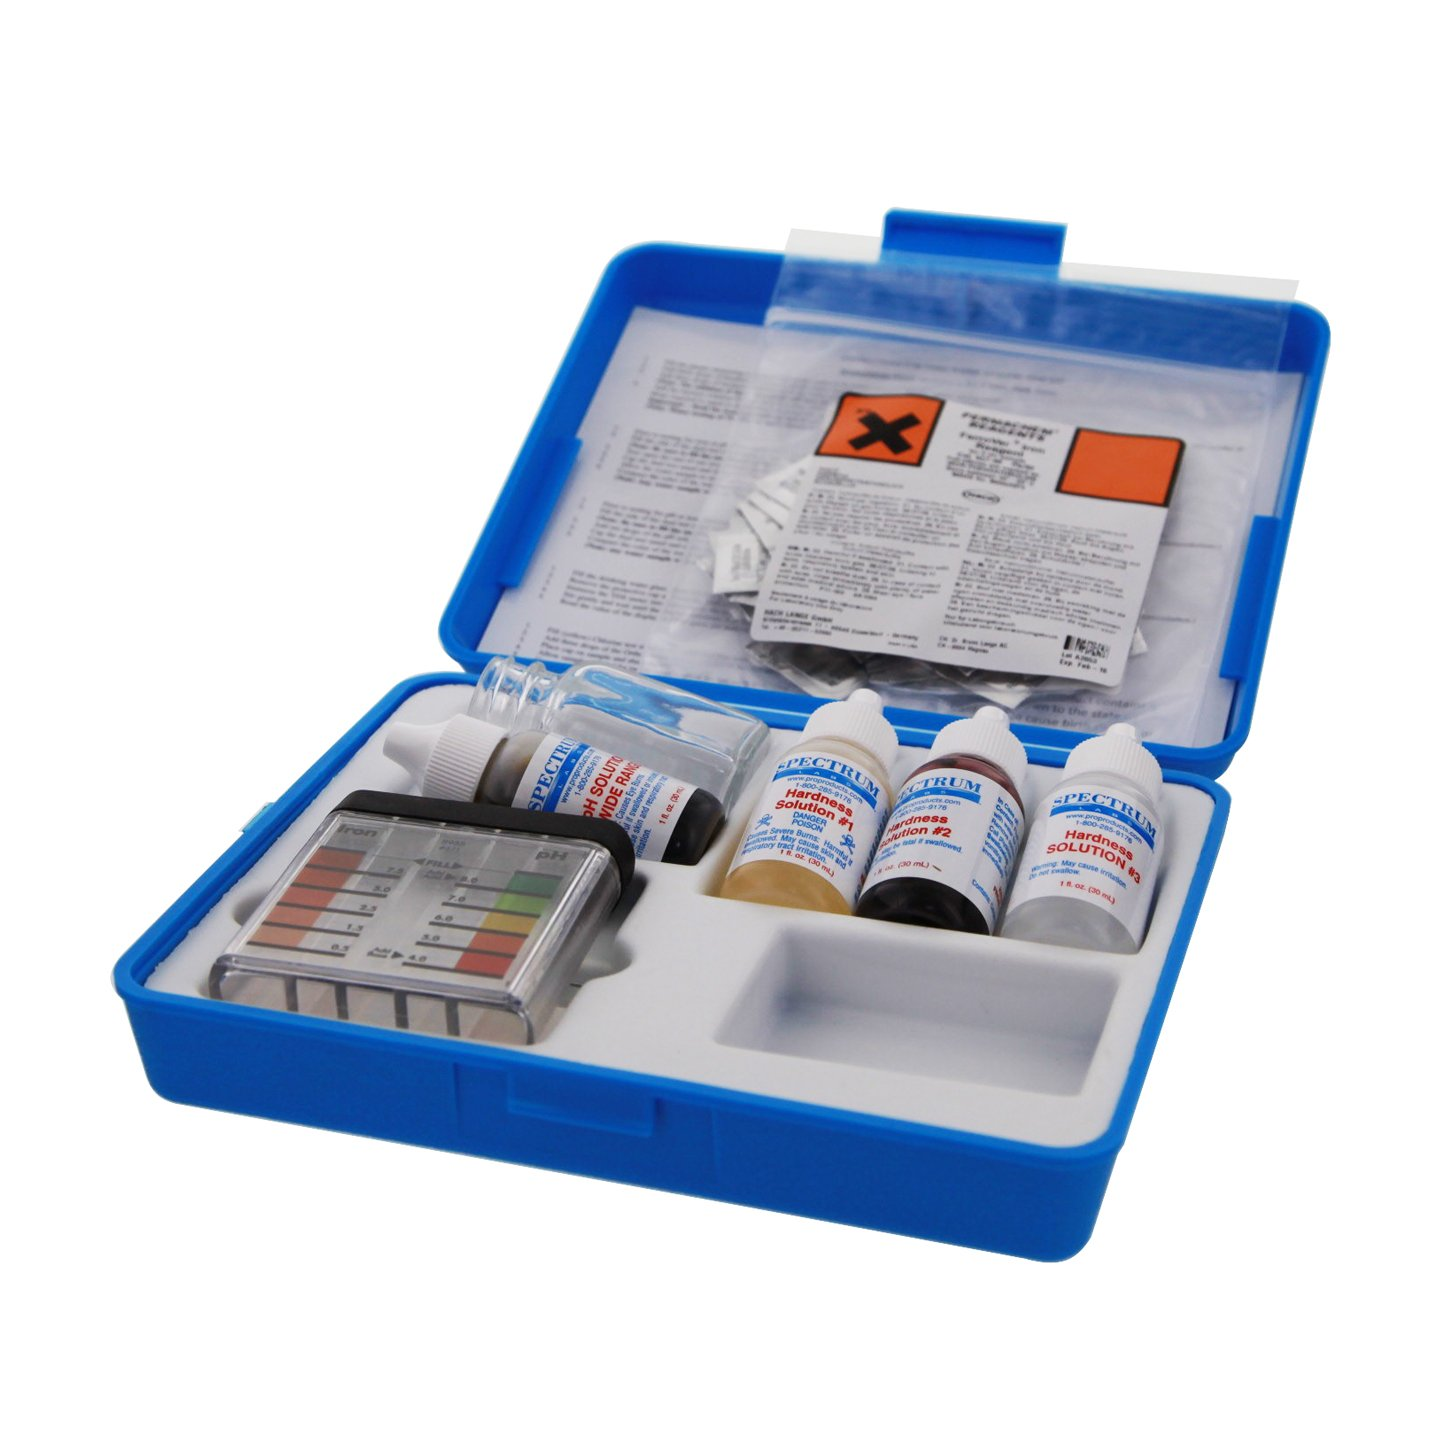 Pro Products Spectrum Standard Hardness Field Analysis Kits - The Best Water Quality Testing Equipment